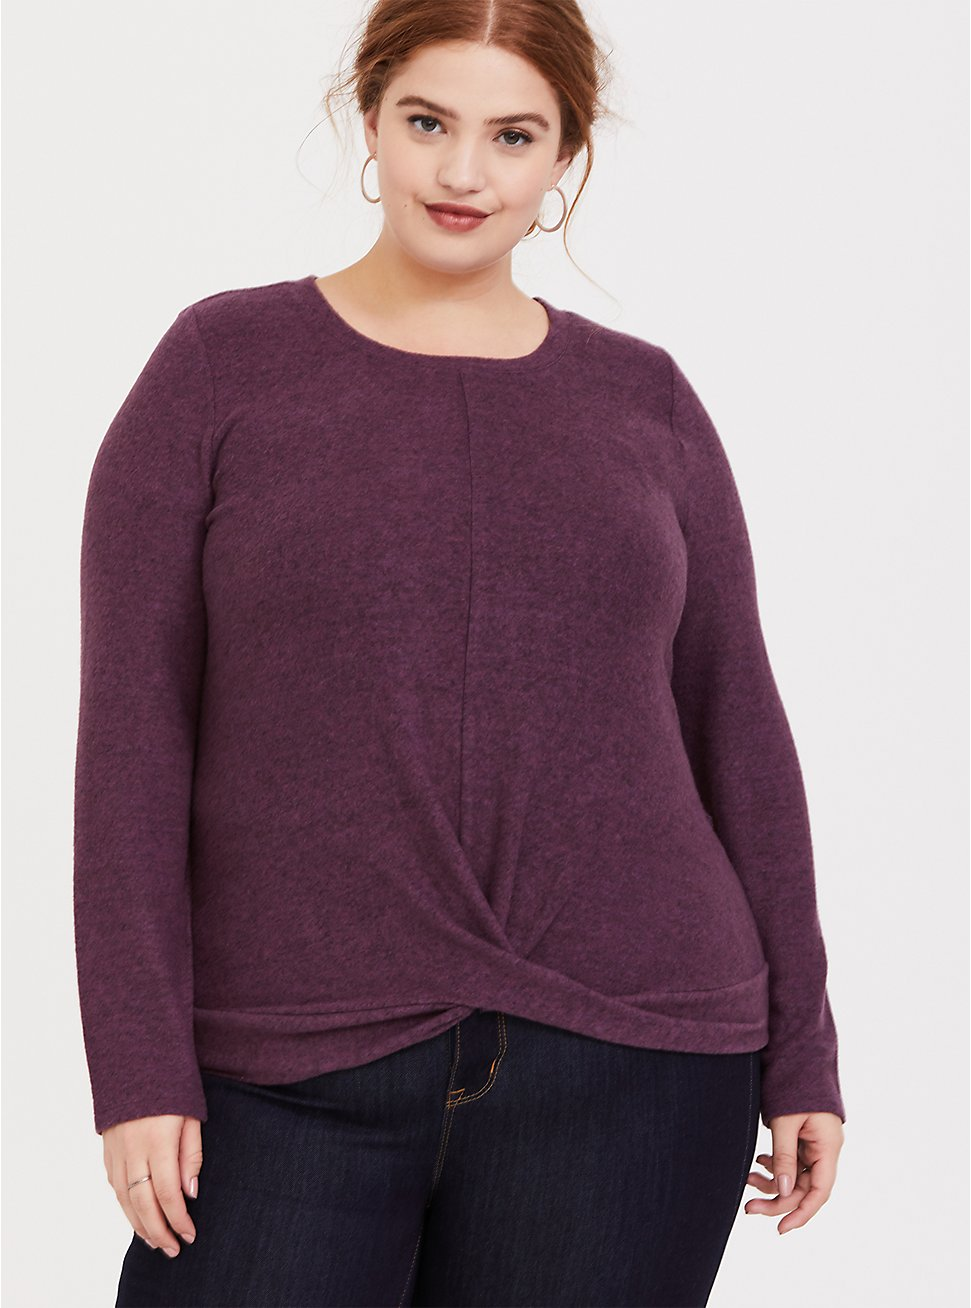 Super Soft Plush Purple Wine Twist Hem Long Sleeve Midi Top, EGGPLANT, hi-res